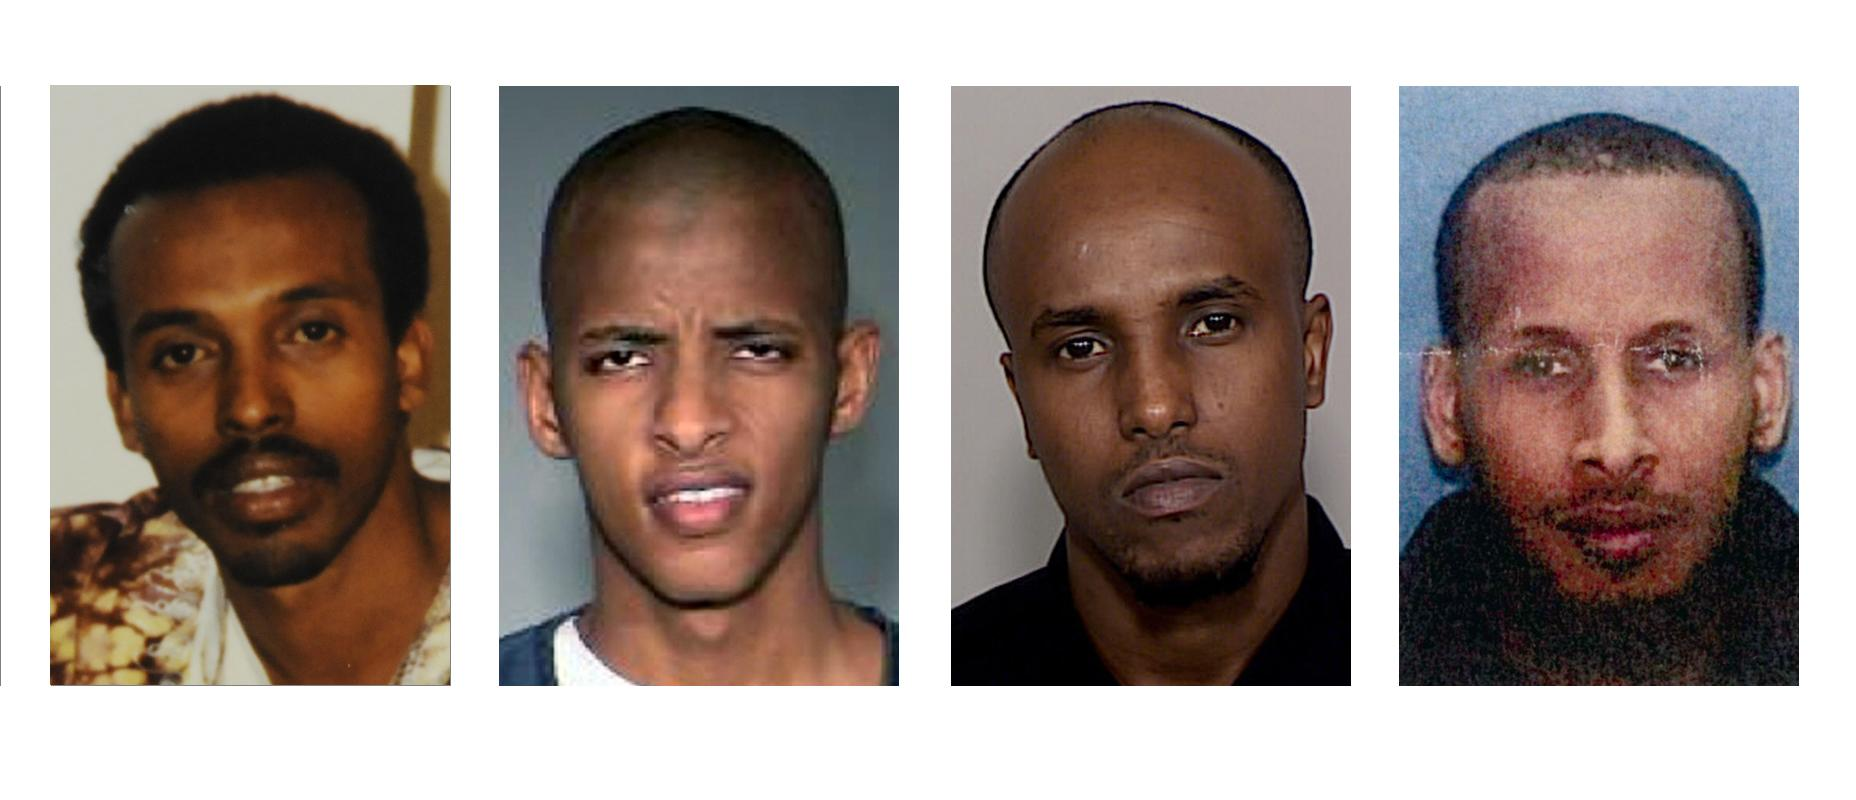 FILE - This combination of undated photos show Somali nationals, from left, Mahamud Said Omar, Abdifatah Yusuf Isse, Salah Osman Ahmed, and Omer Abdi Mohamed. Nine people convicted in a government investigation of terror recruitment and financing for an al-Qaida-linked group in Somalia are to be sentenced in U.S. District Court in Minneapolis. Authorities say more than 20 young men have left Minnesota to join al-Shabab since 2007(AP Photo/file)